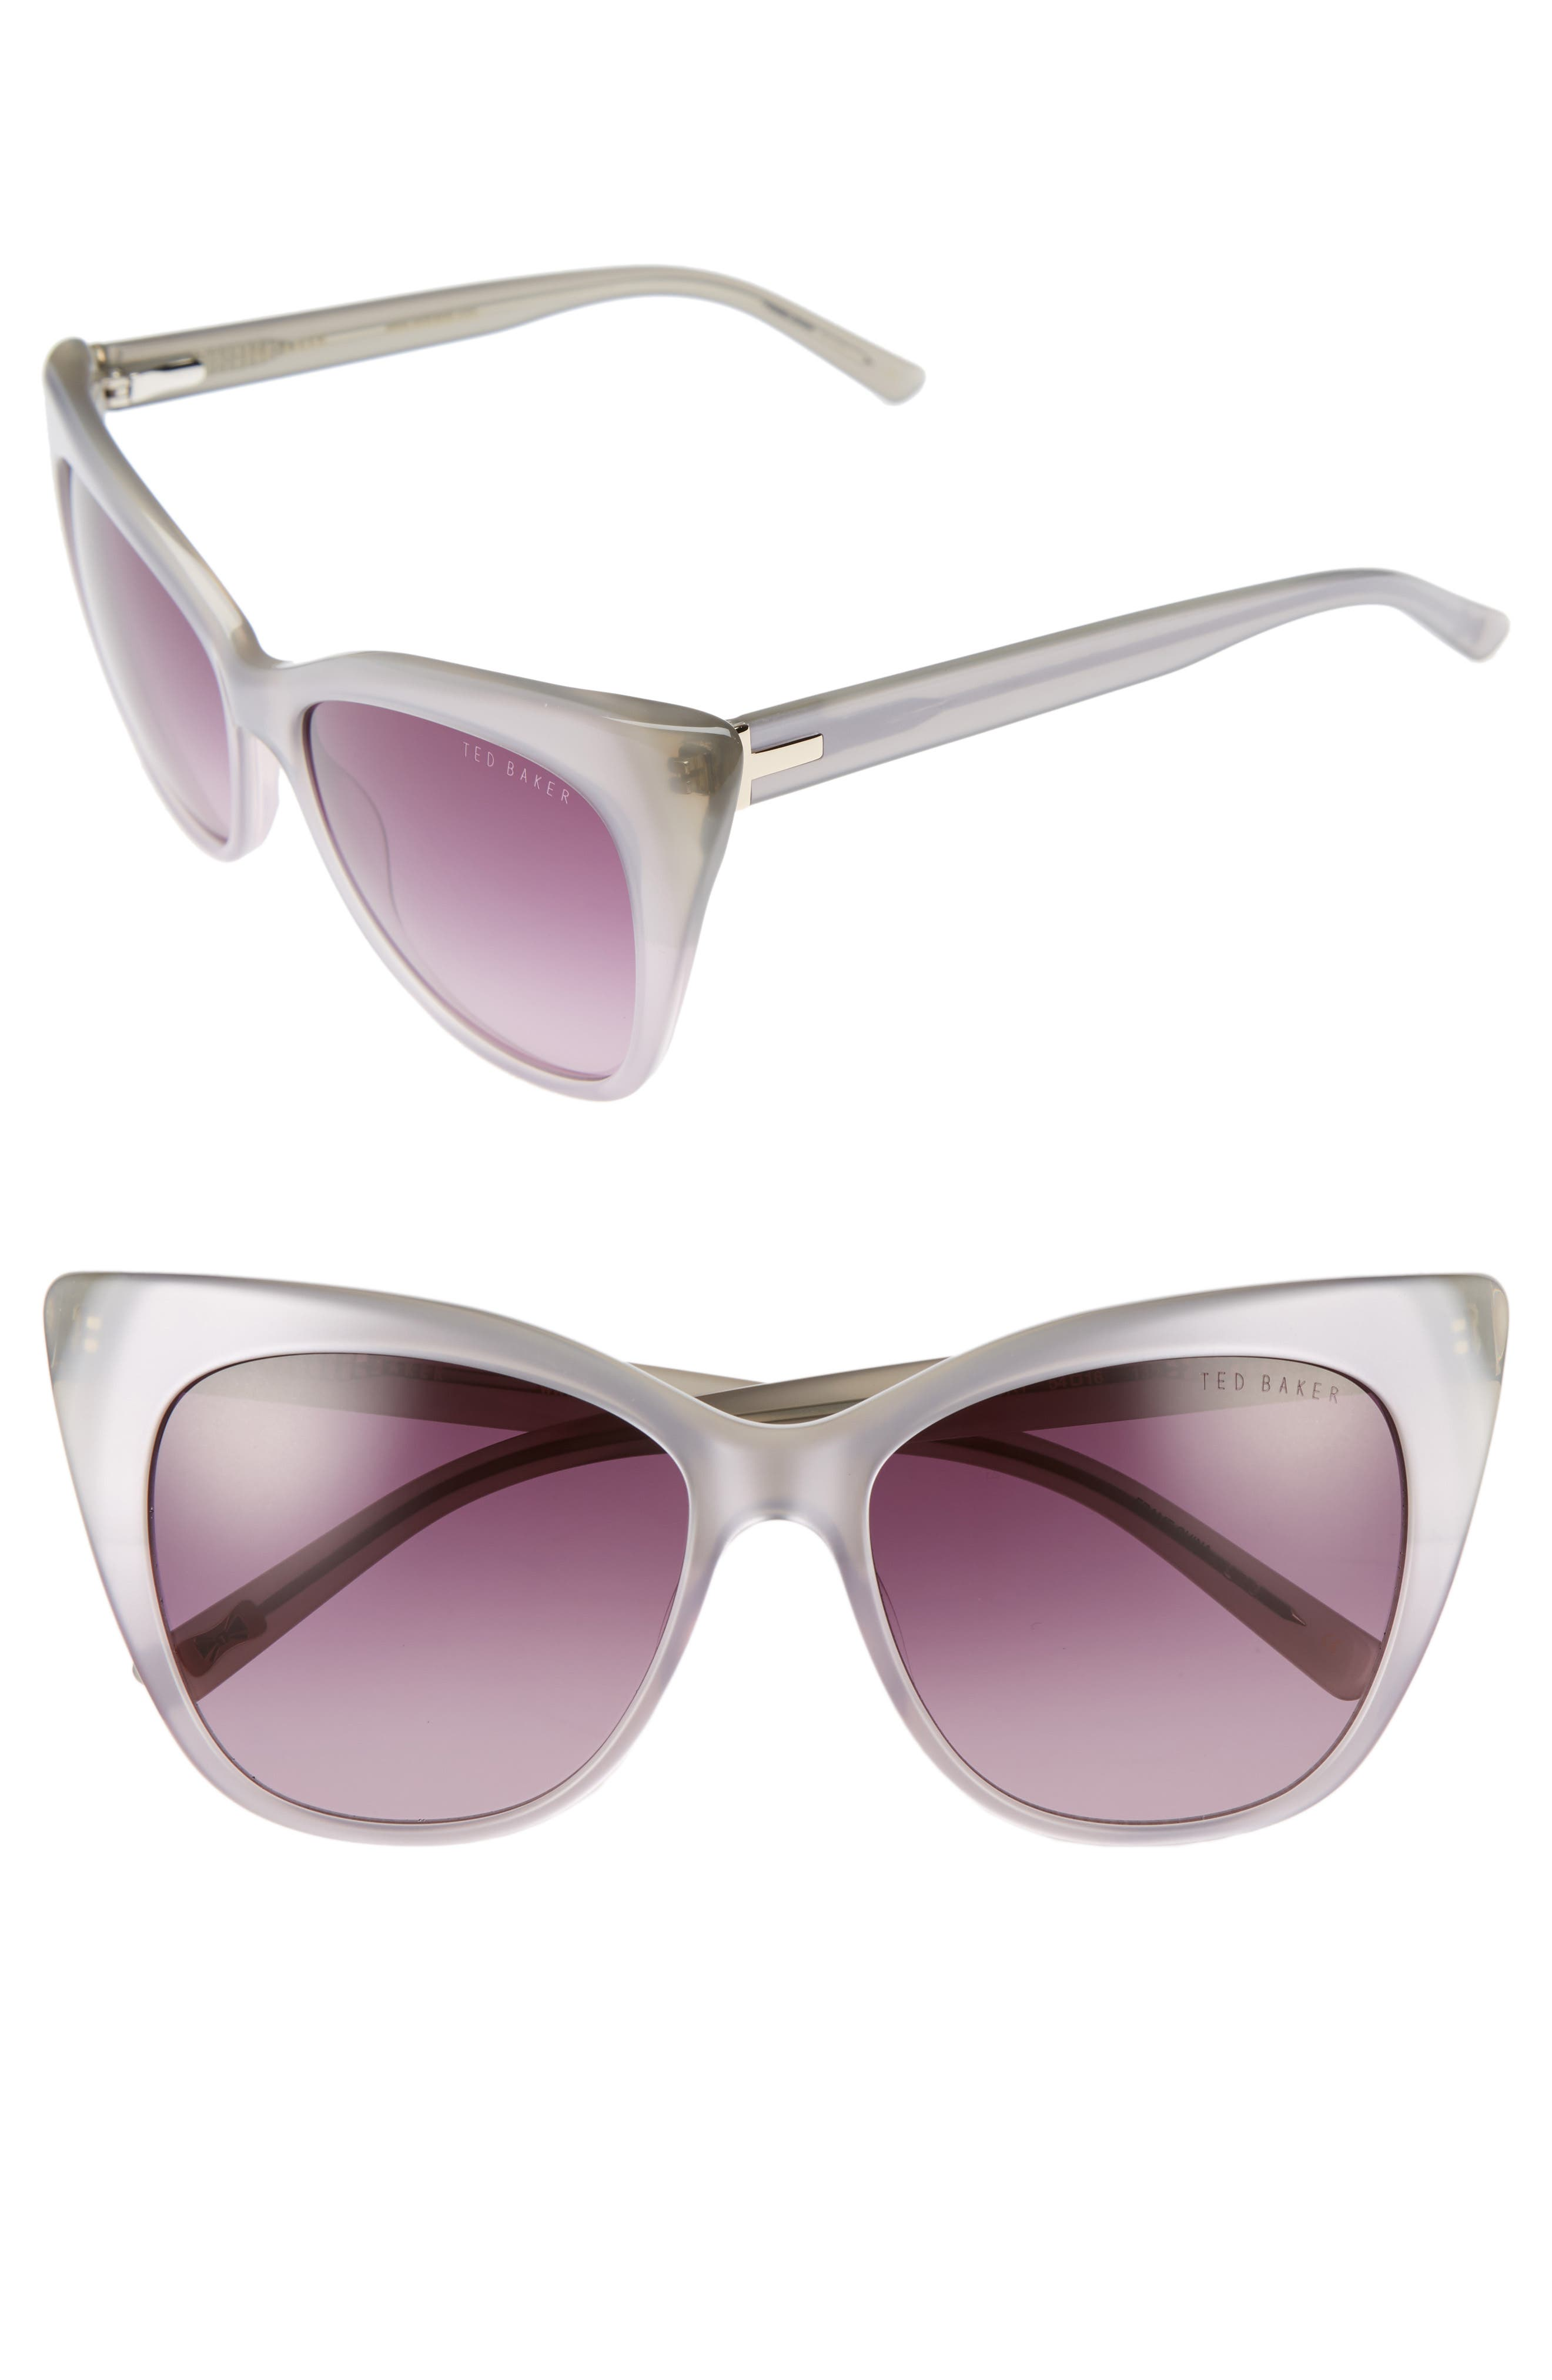 54mm Cat Eye Sunglasses,                         Main,                         color, 020